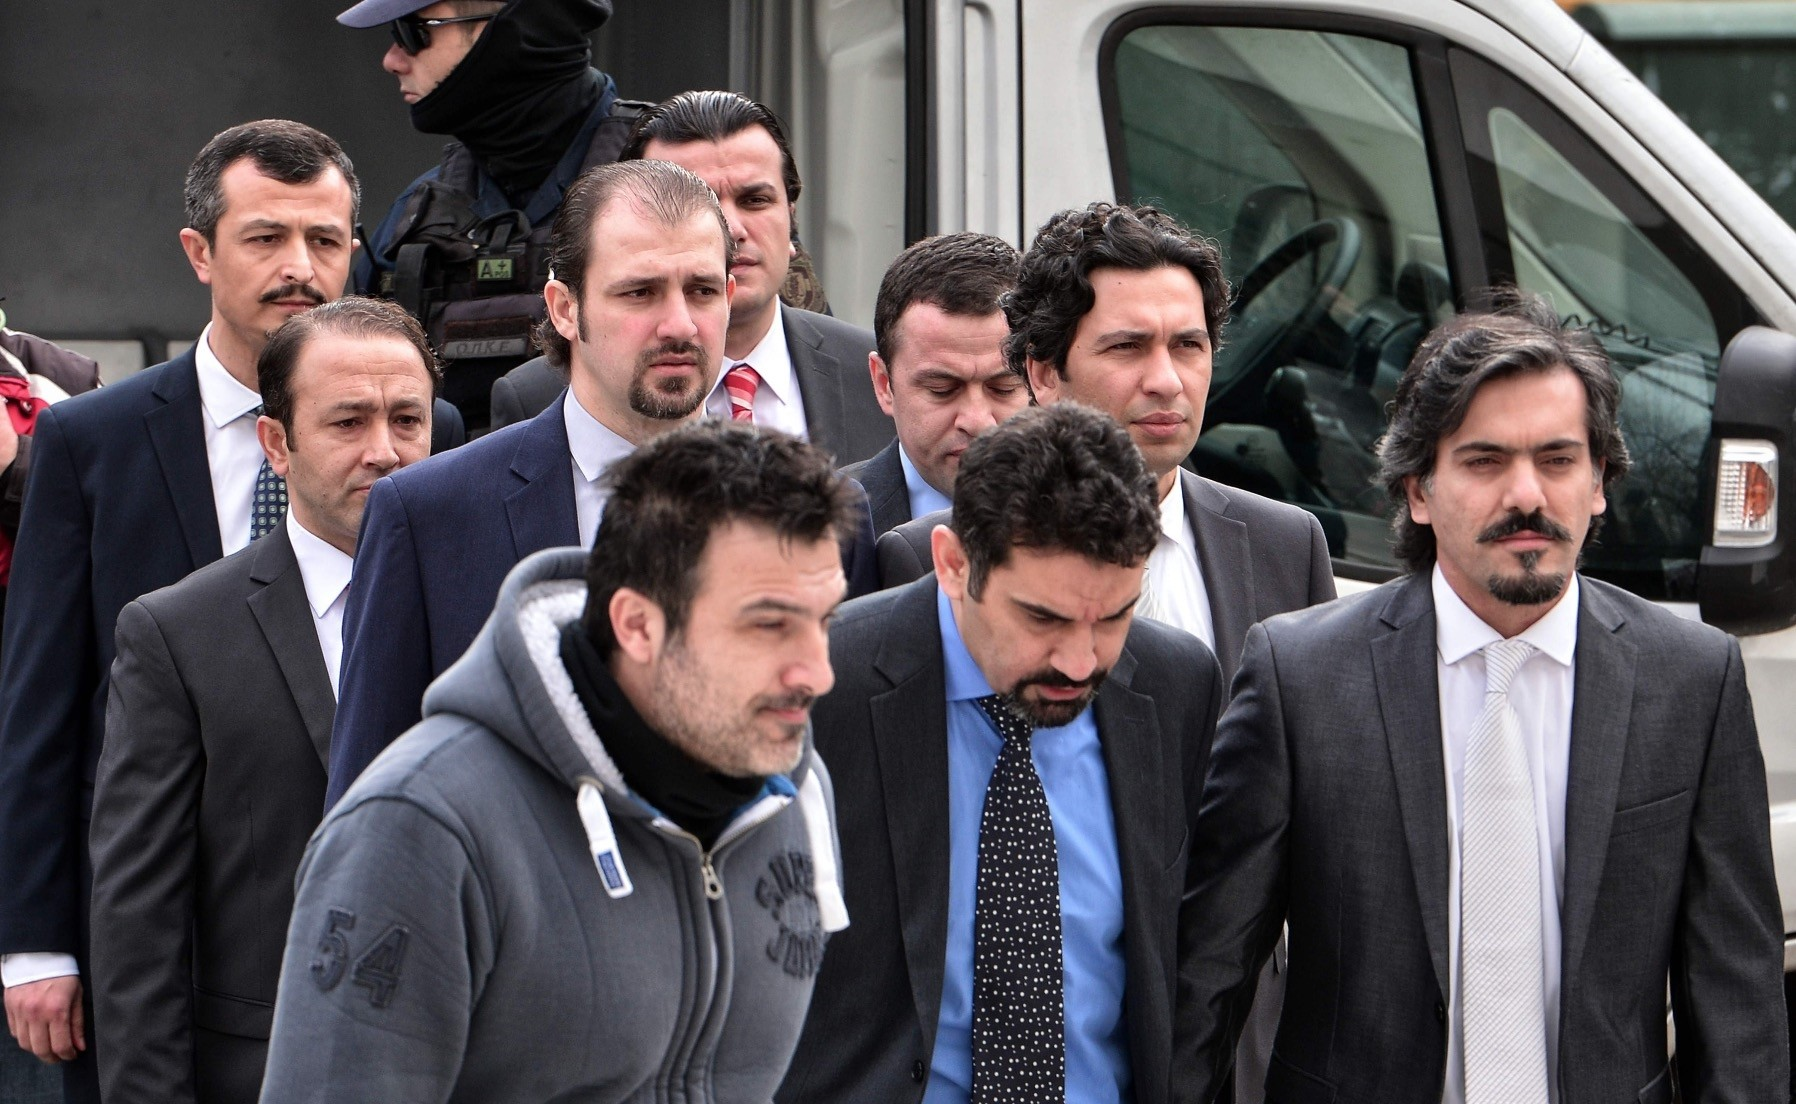 Eight suspected putschists wanted by Turkey are escorted by Greek police as they arrive at a court in Athens in 2017. Greece granted asylum to three among them, to the chagrin of Ankara.